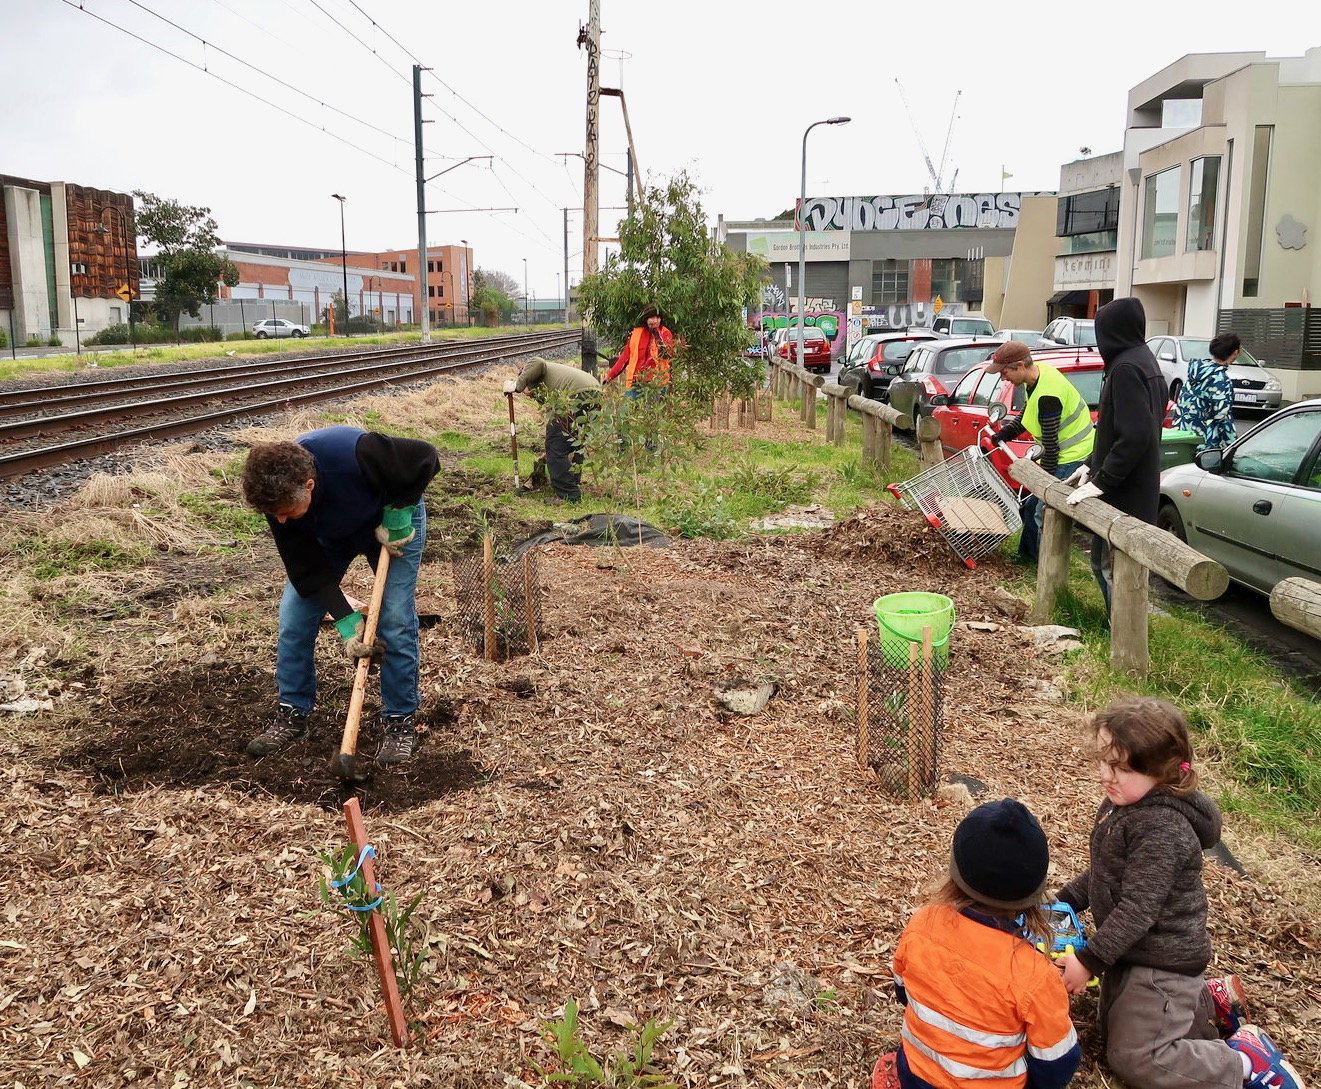 Some volunteers planting trees near Jewell Station